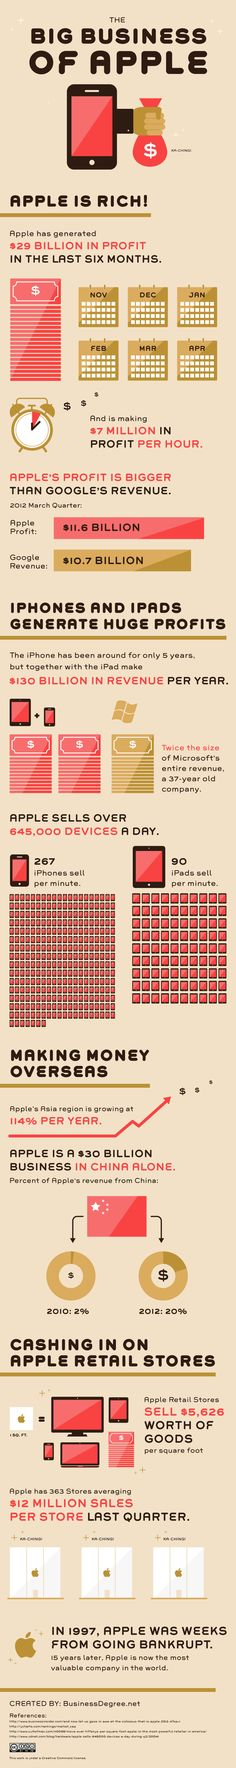 The Big Business Of Apple #infographic #socialmedia #in